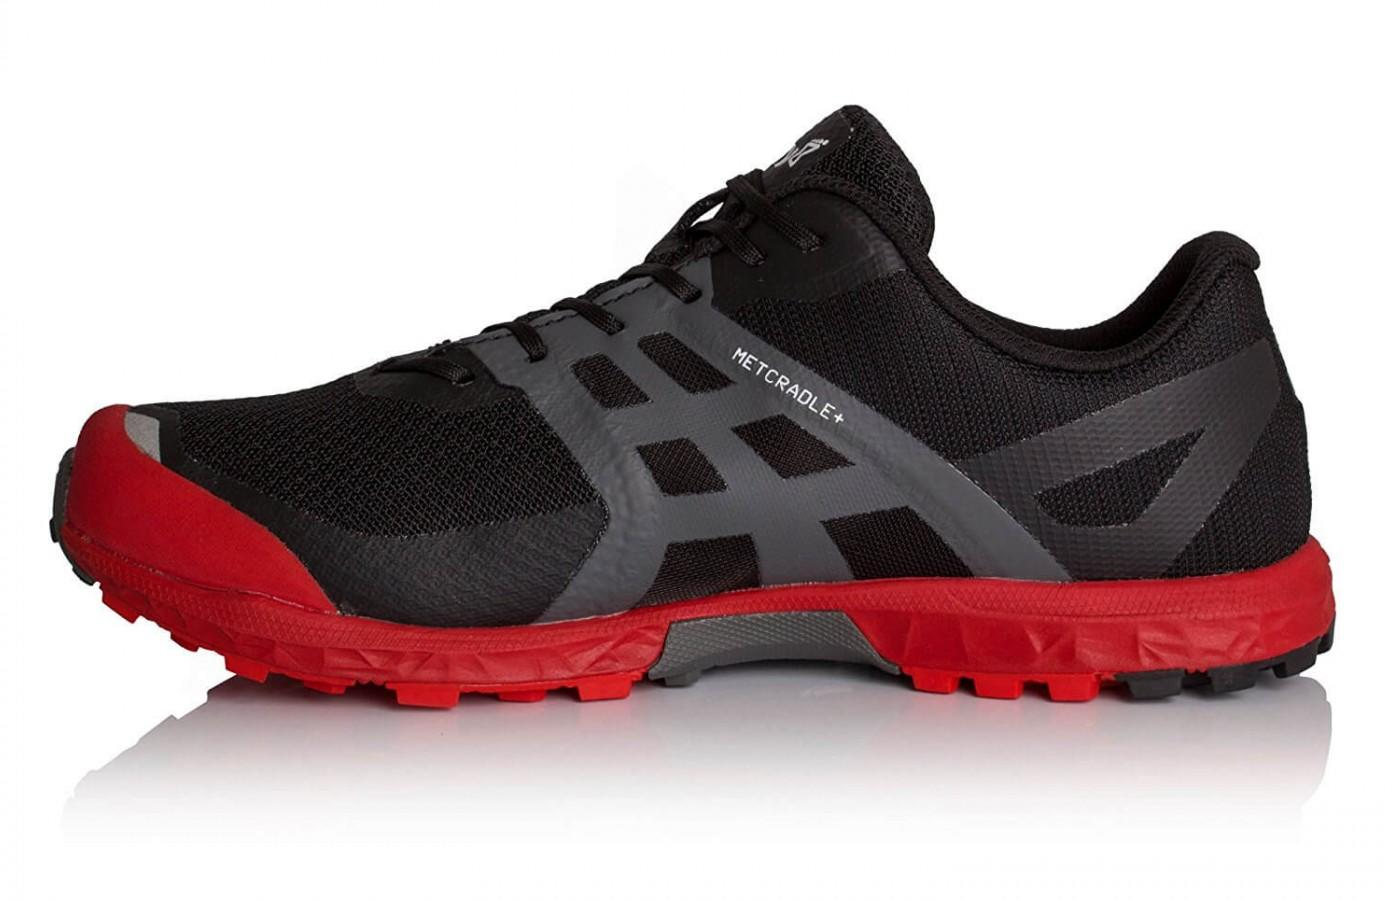 Inov-8 Trailroc 270 Review - To Buy or Not in Mar 2019  d9939c4e89f